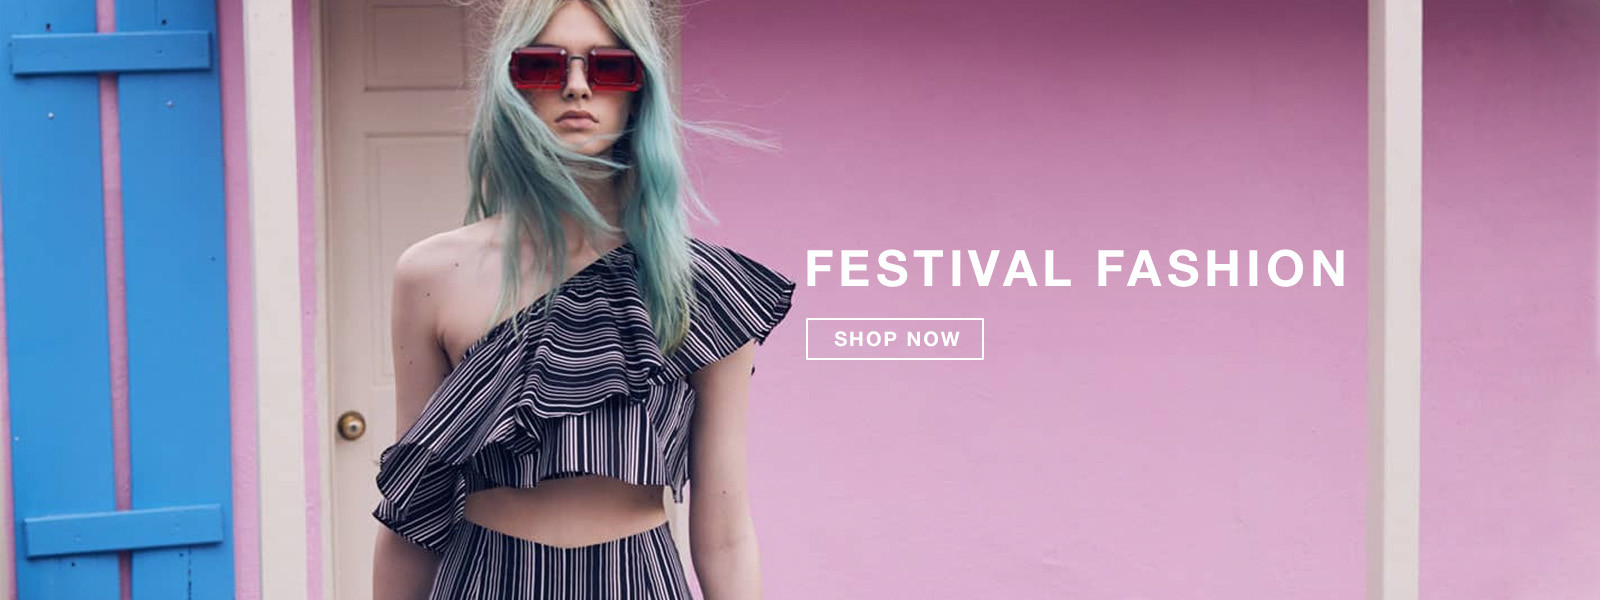 Festival Fashion What to wear to music festivals this year